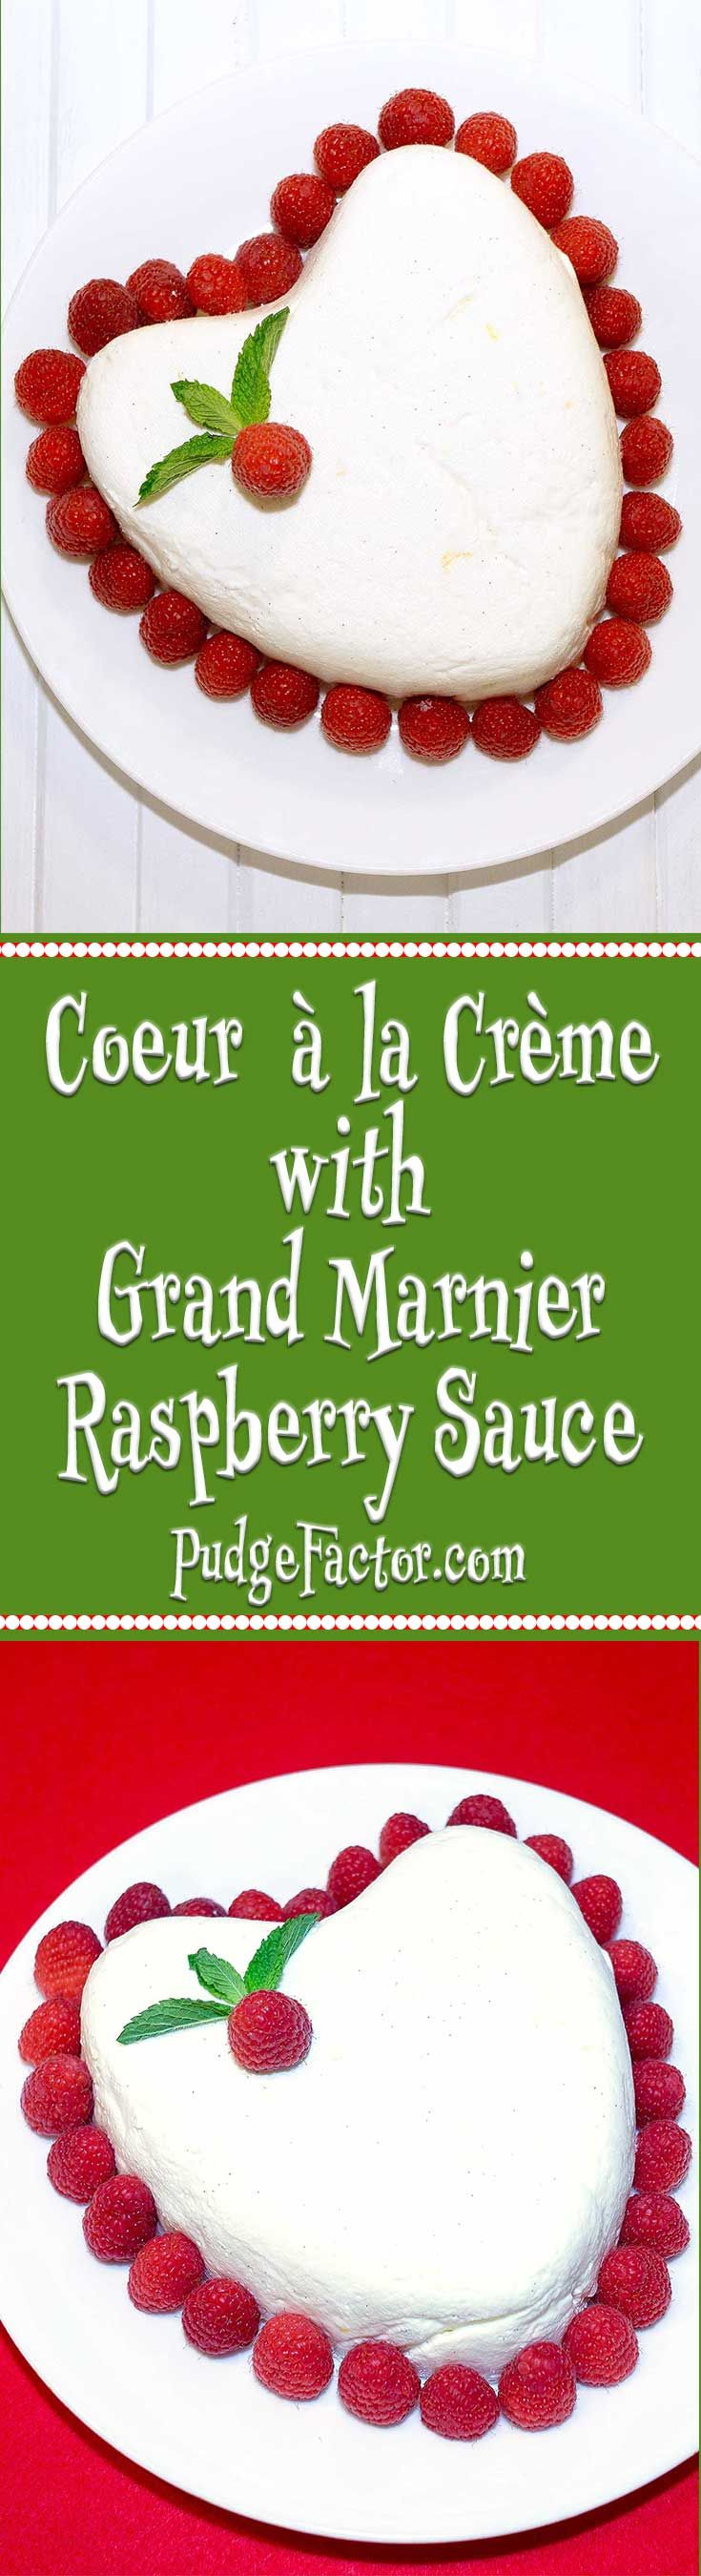 Coeur à la Crème with Grand Marnier Raspberry Sauce is a perfect ...